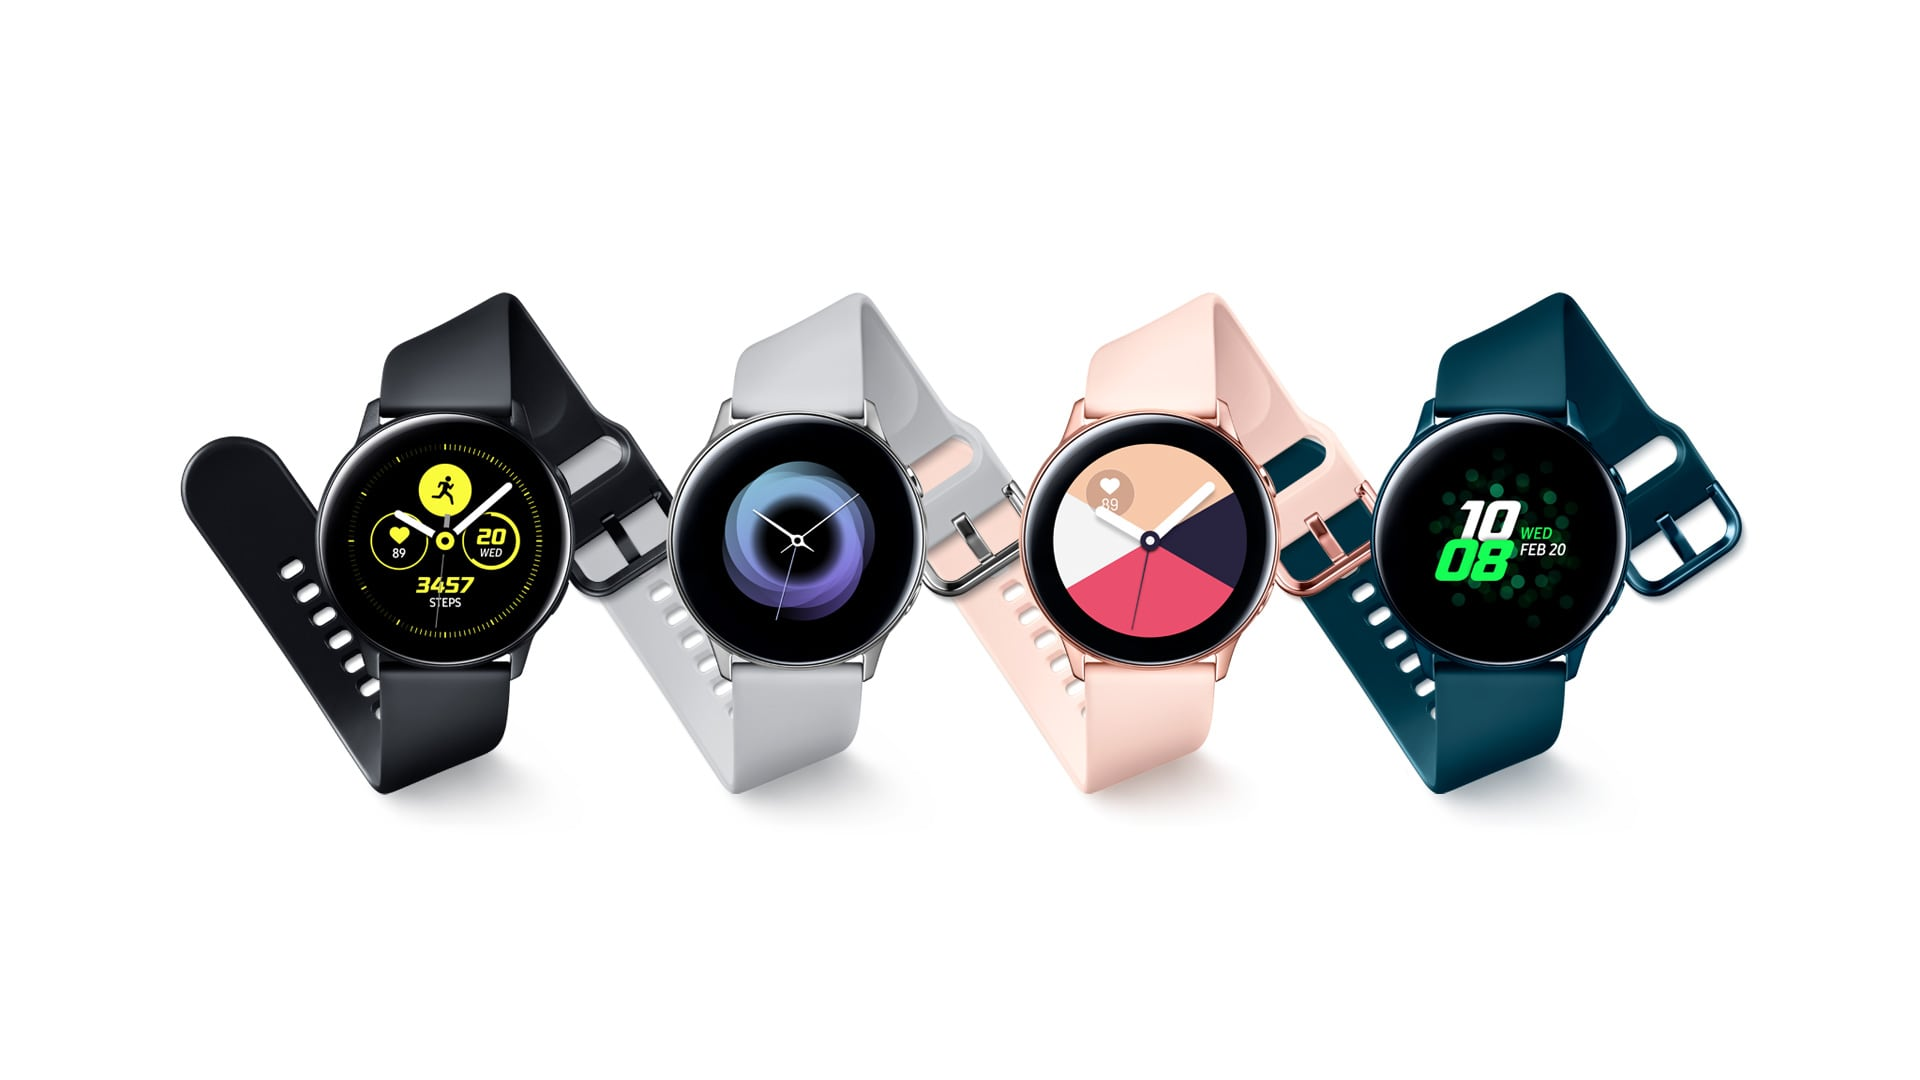 Samsung Galaxy Watch Active 2: New leaks suggest an Under Armor version